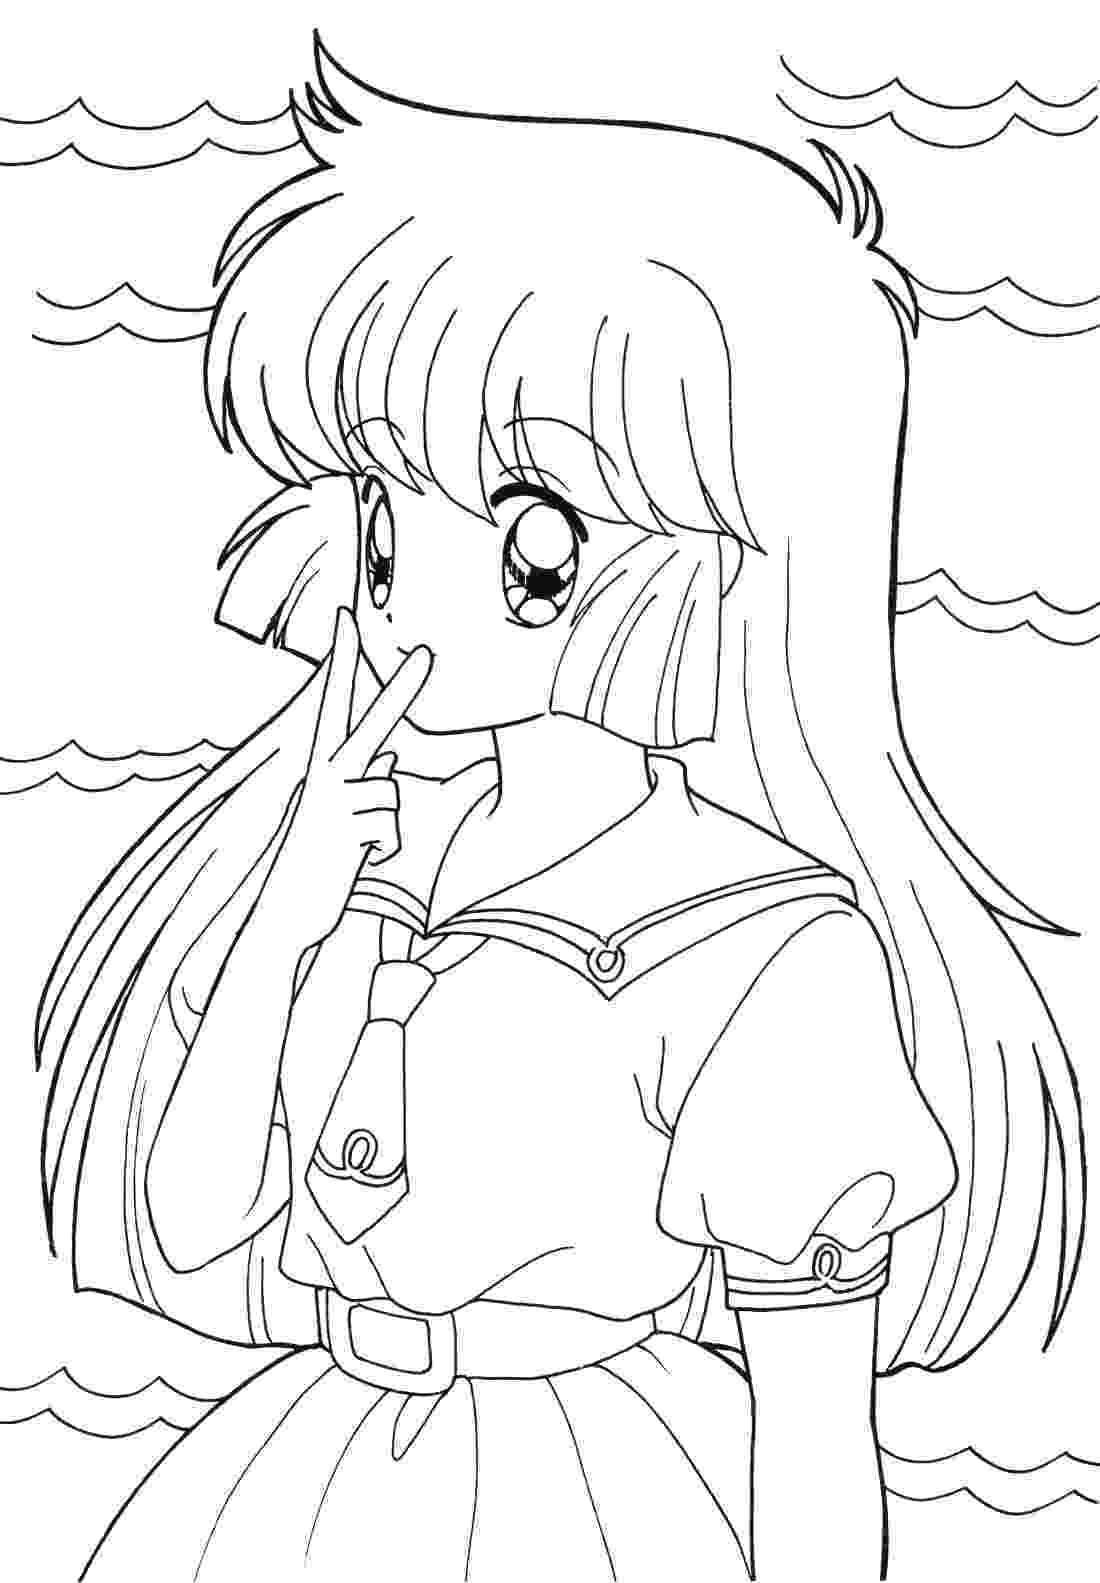 girl coloring sheets anime coloring pages best coloring pages for kids sheets coloring girl 1 1